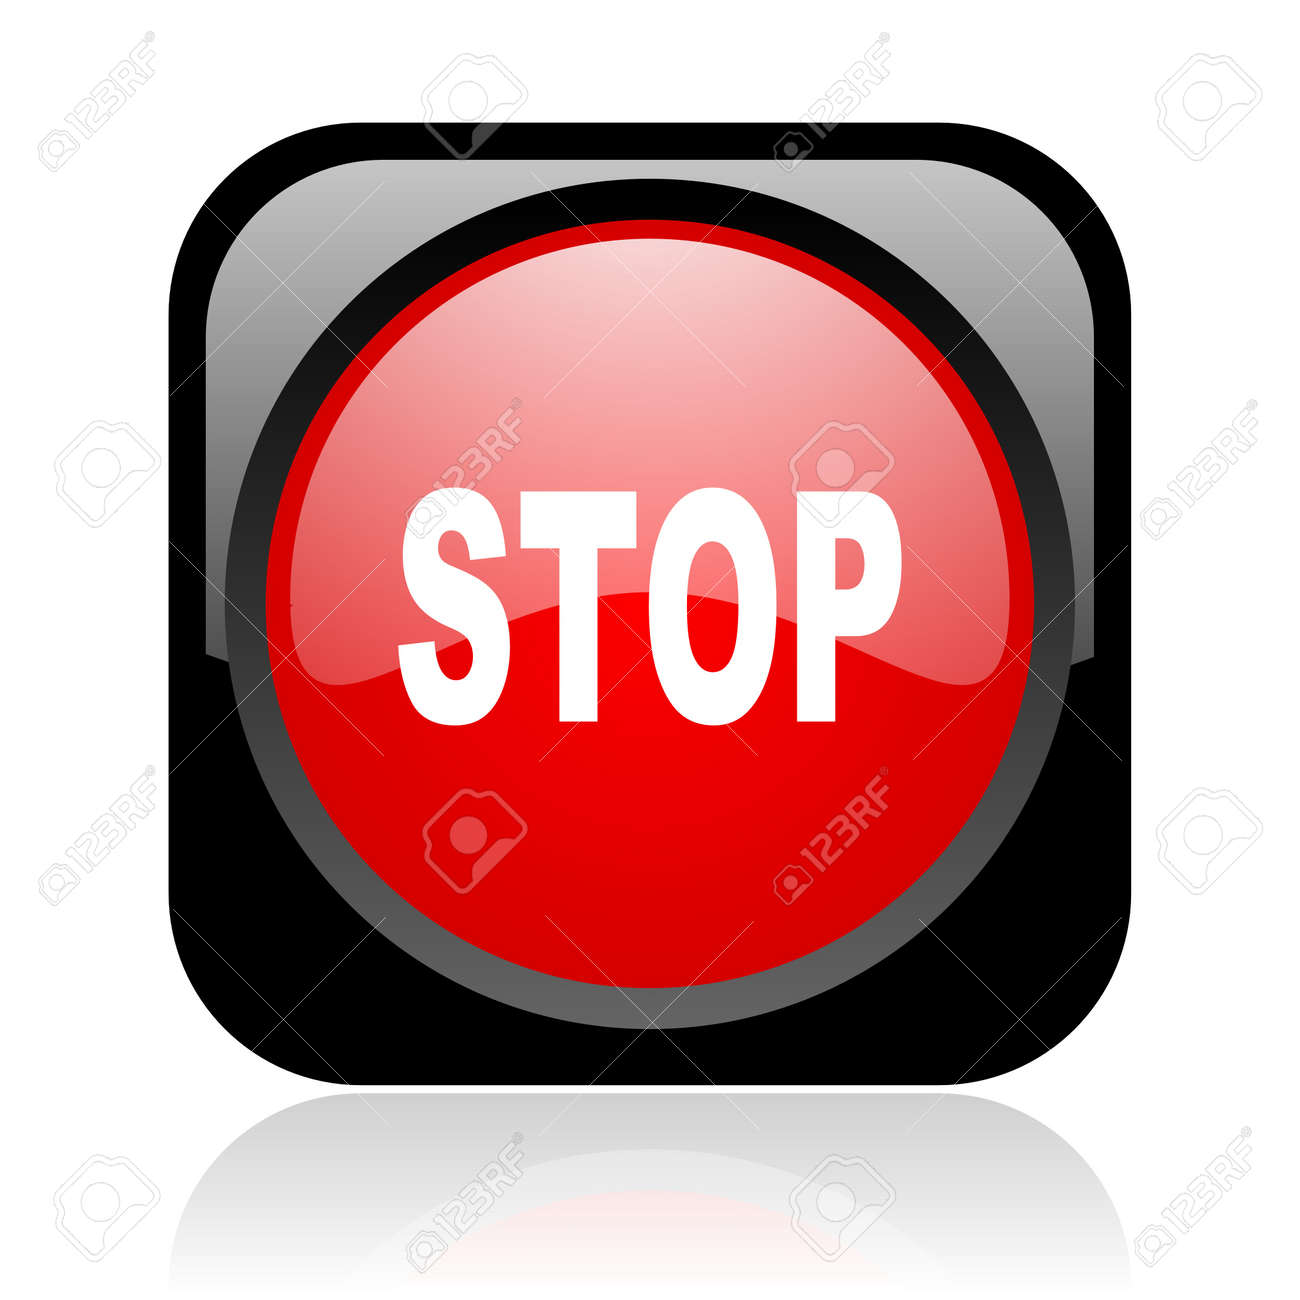 stop black and red square web glossy icon Stock Photo - 19003994